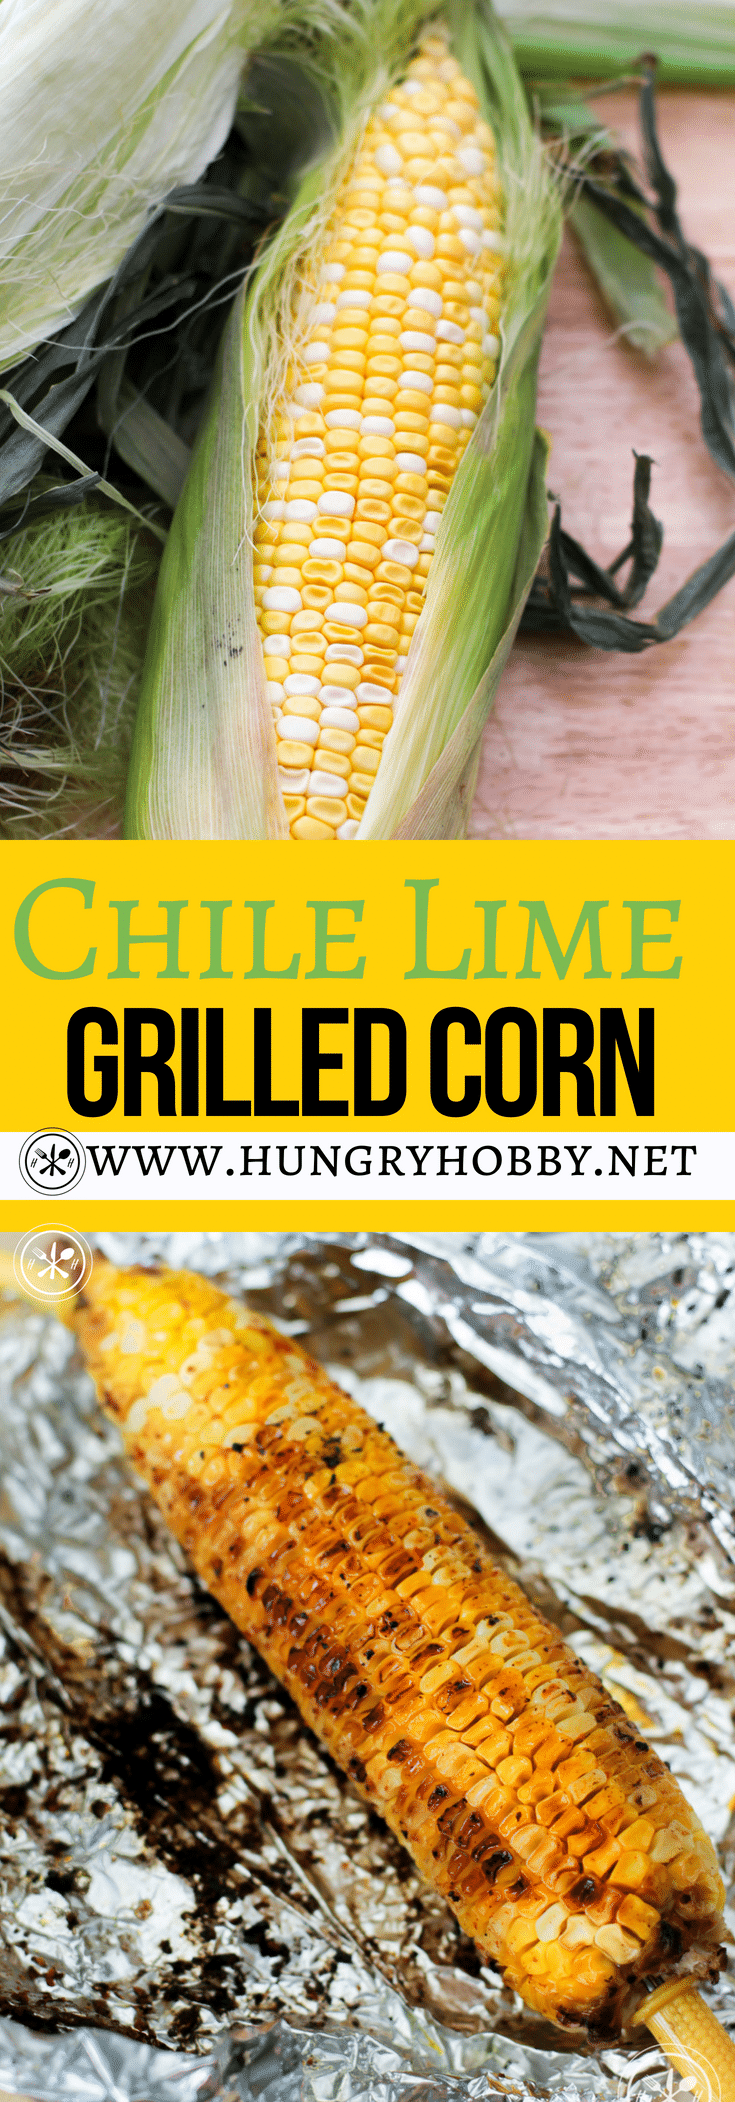 Traditional buttery corn on the cob with a kick!  This Chile Lime Grilled Corn on the Cob Recipe is a little spicy, salty, and buttery in every single bite! #glutenfree #vegetarian #vegan #healthy #hungryhobby